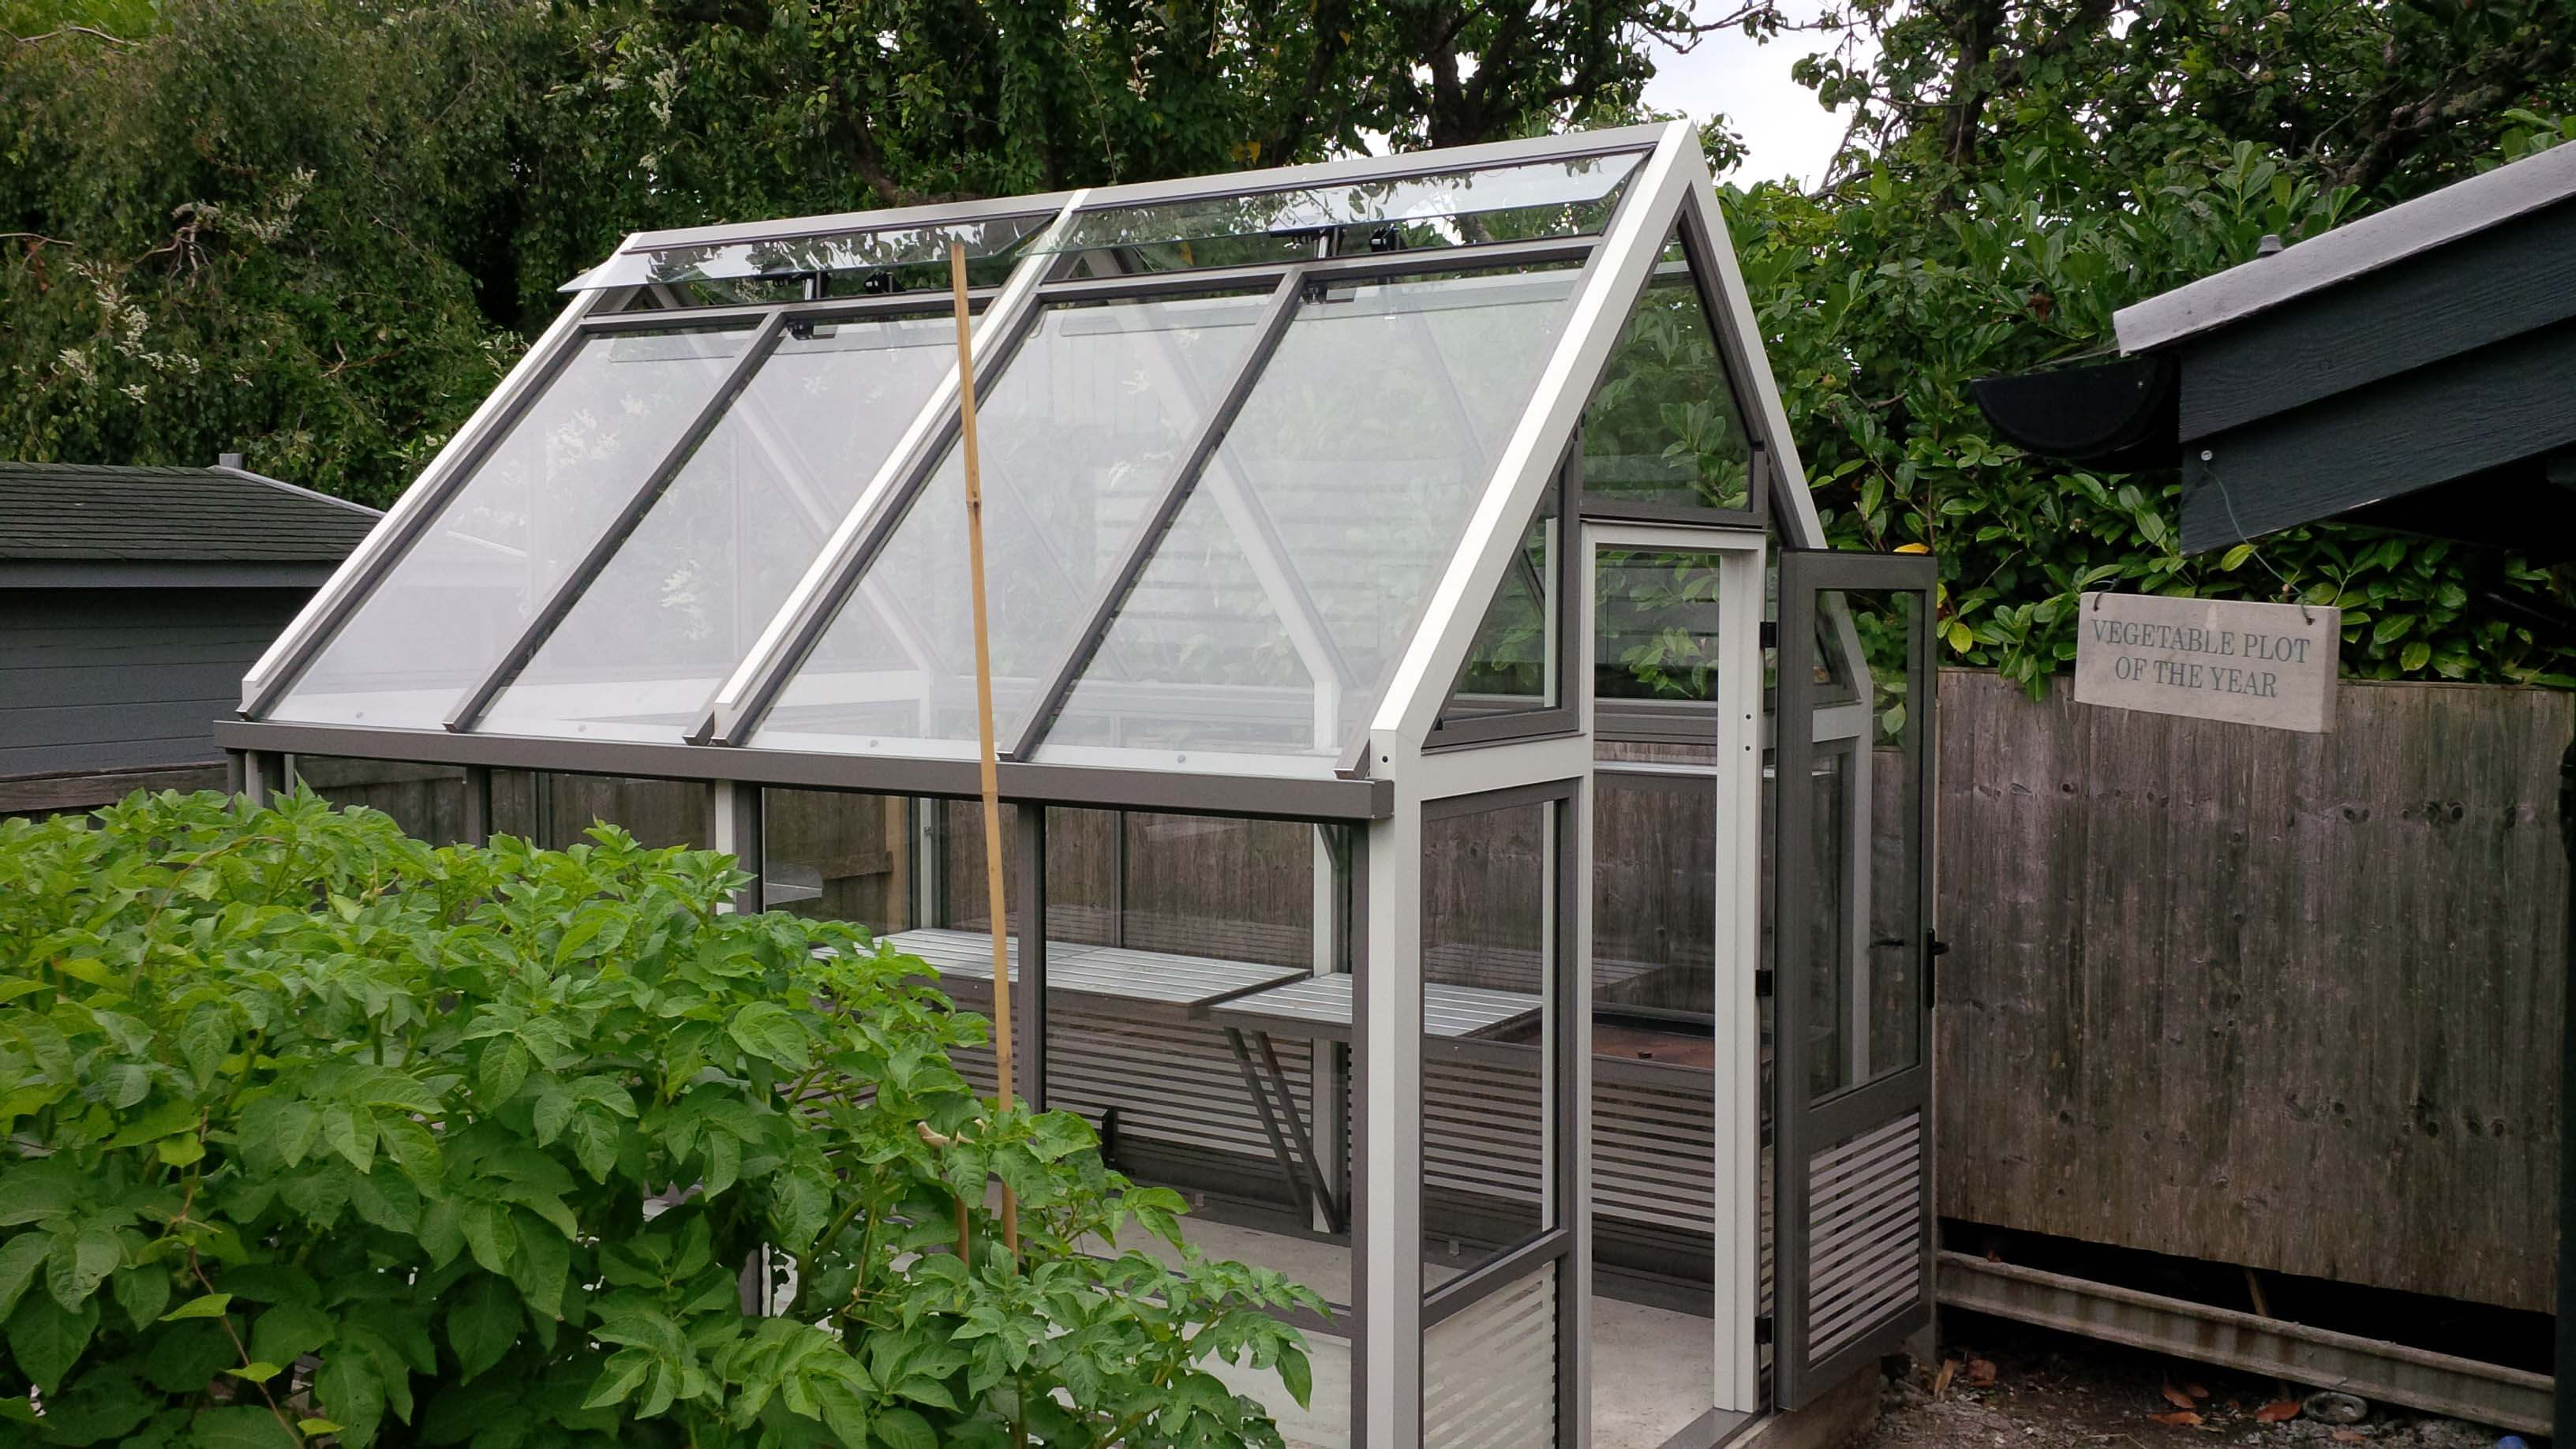 New aluminium striped greenhouse